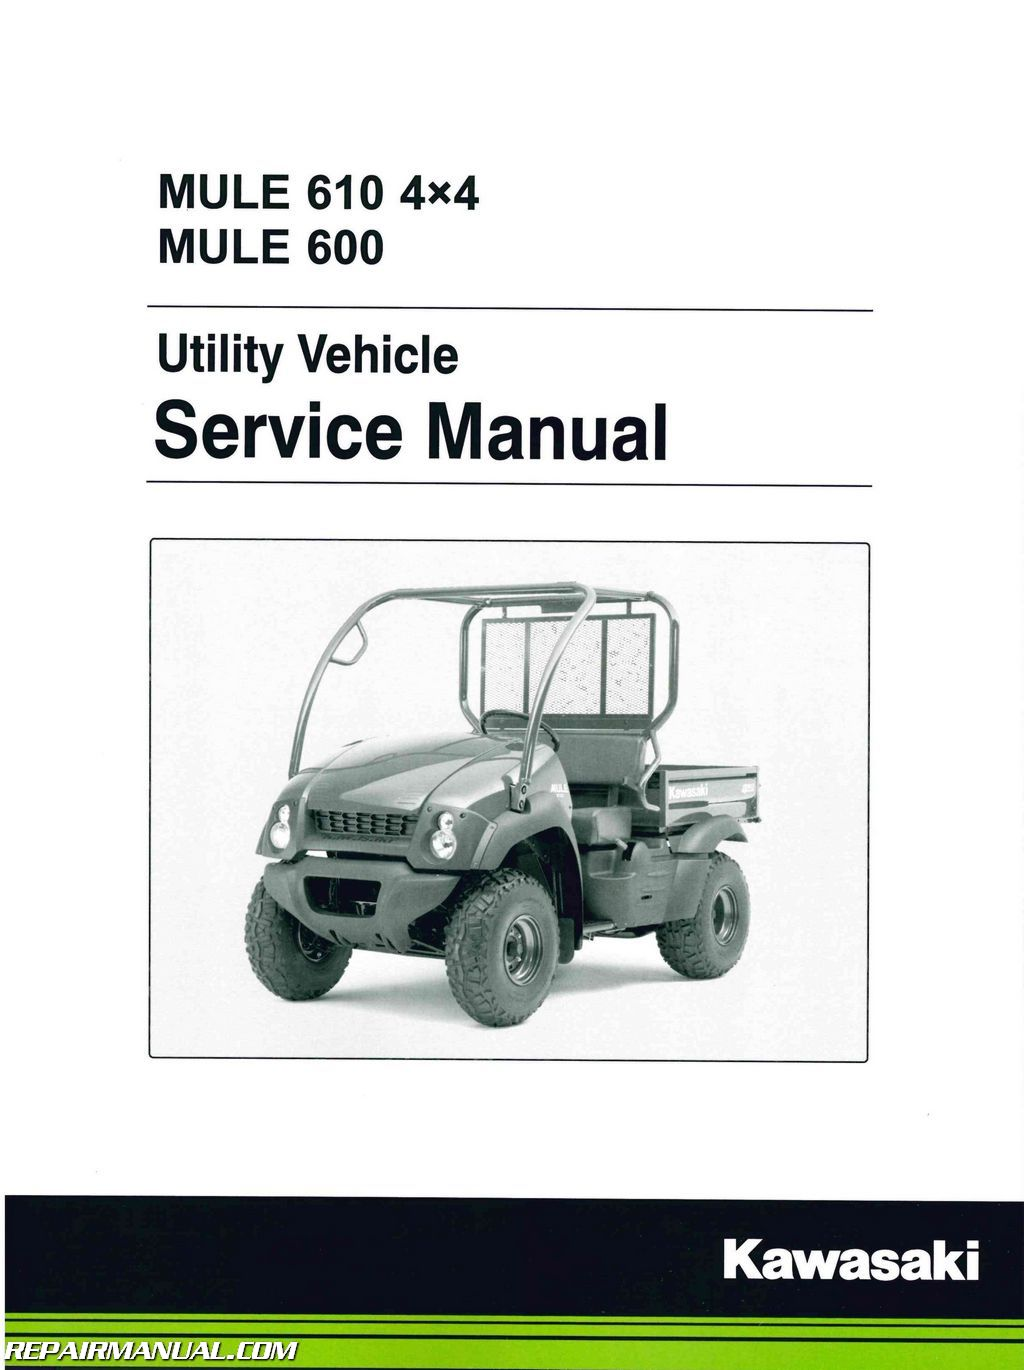 Kawasaki Mule Oil Drain Plug Location